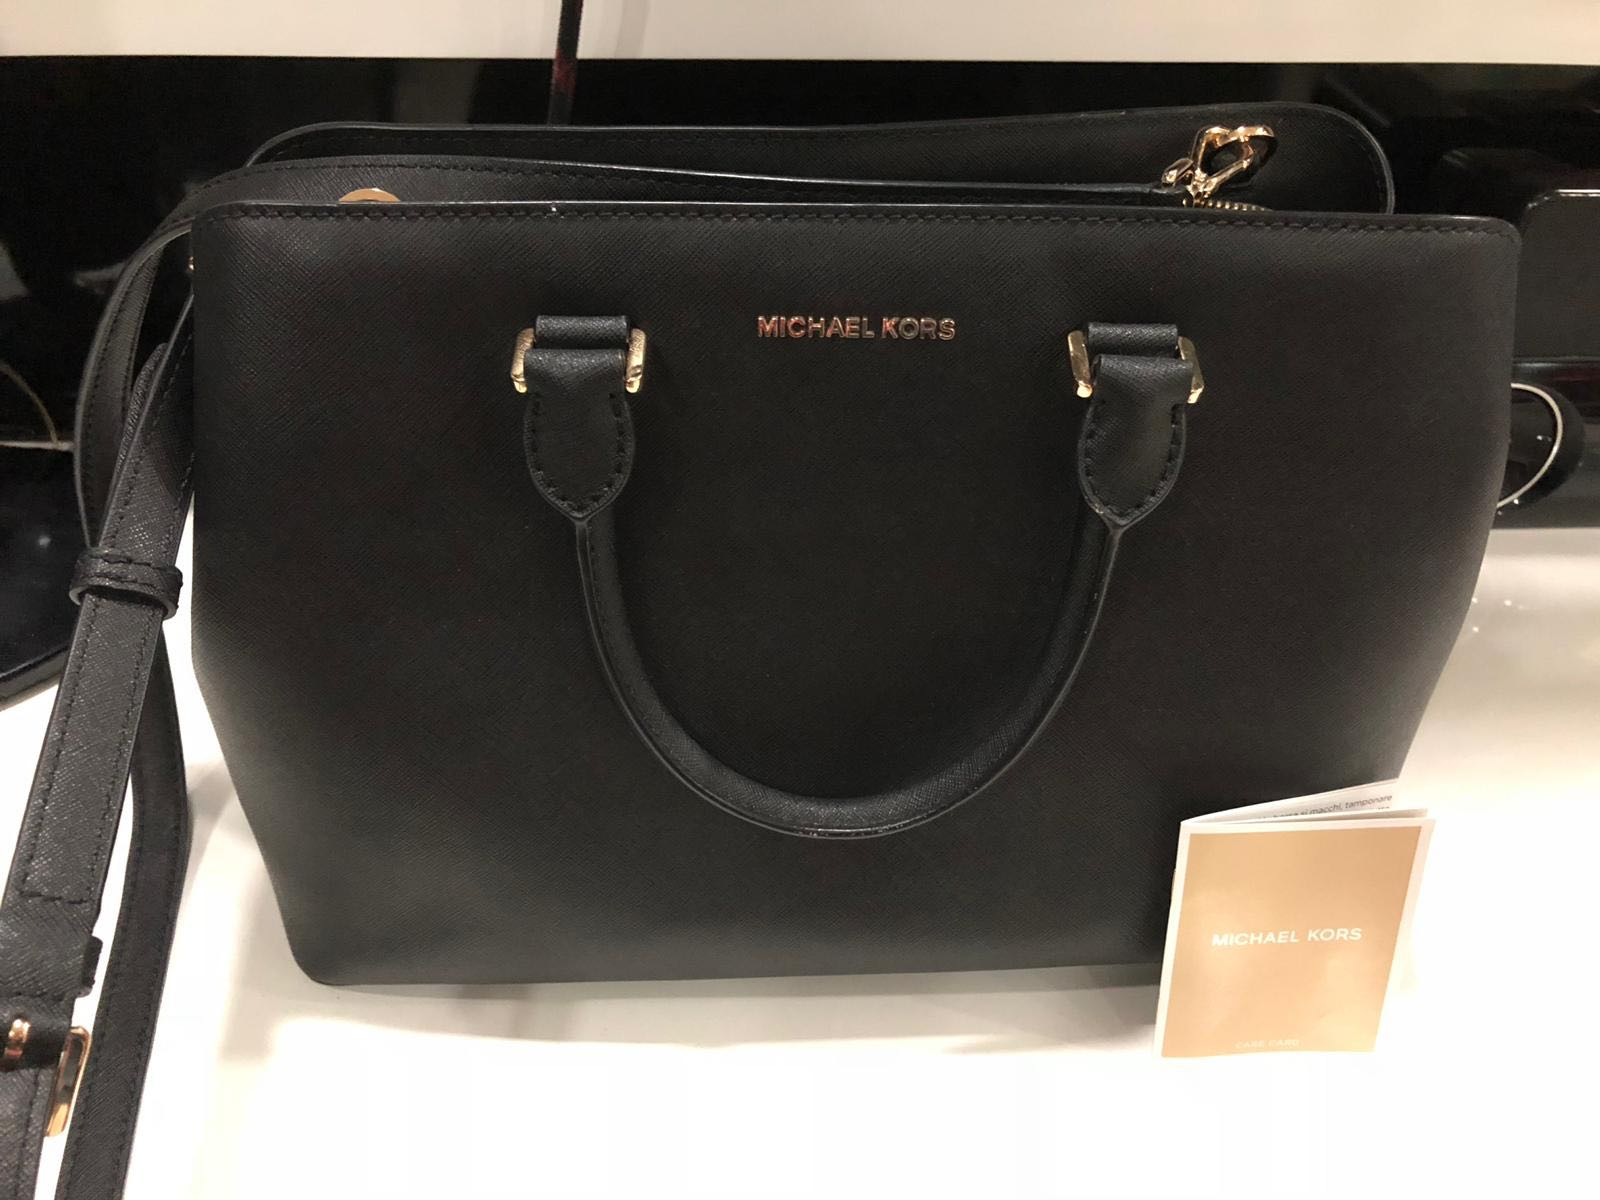 500b8a94e910 Michael Kors Bag (authentic), Women's Fashion, Bags & Wallets ...